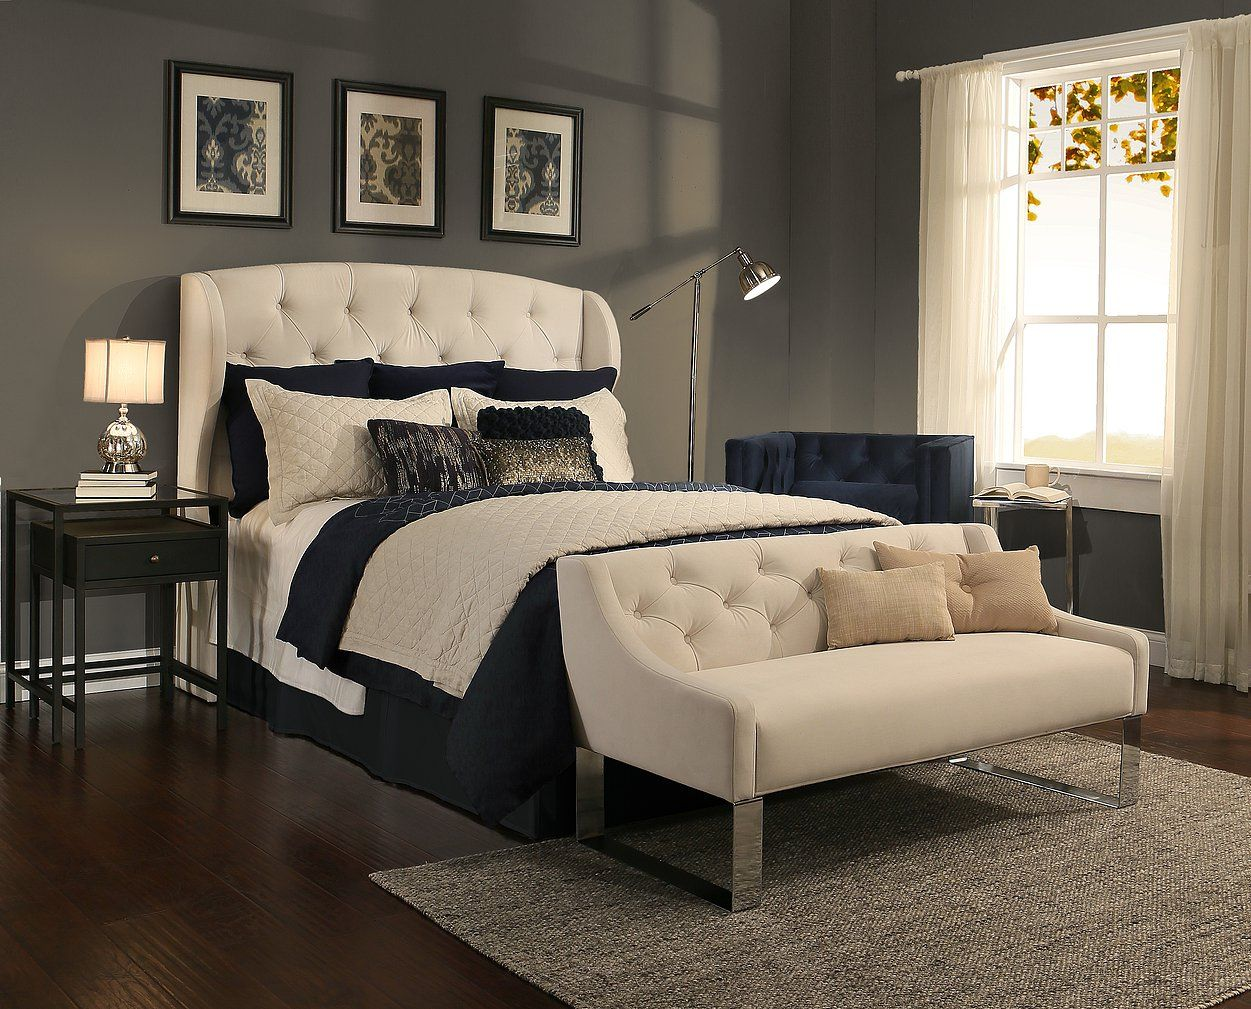 Beautiful Tufted Headboards With Matching Benches Bedroom Sets